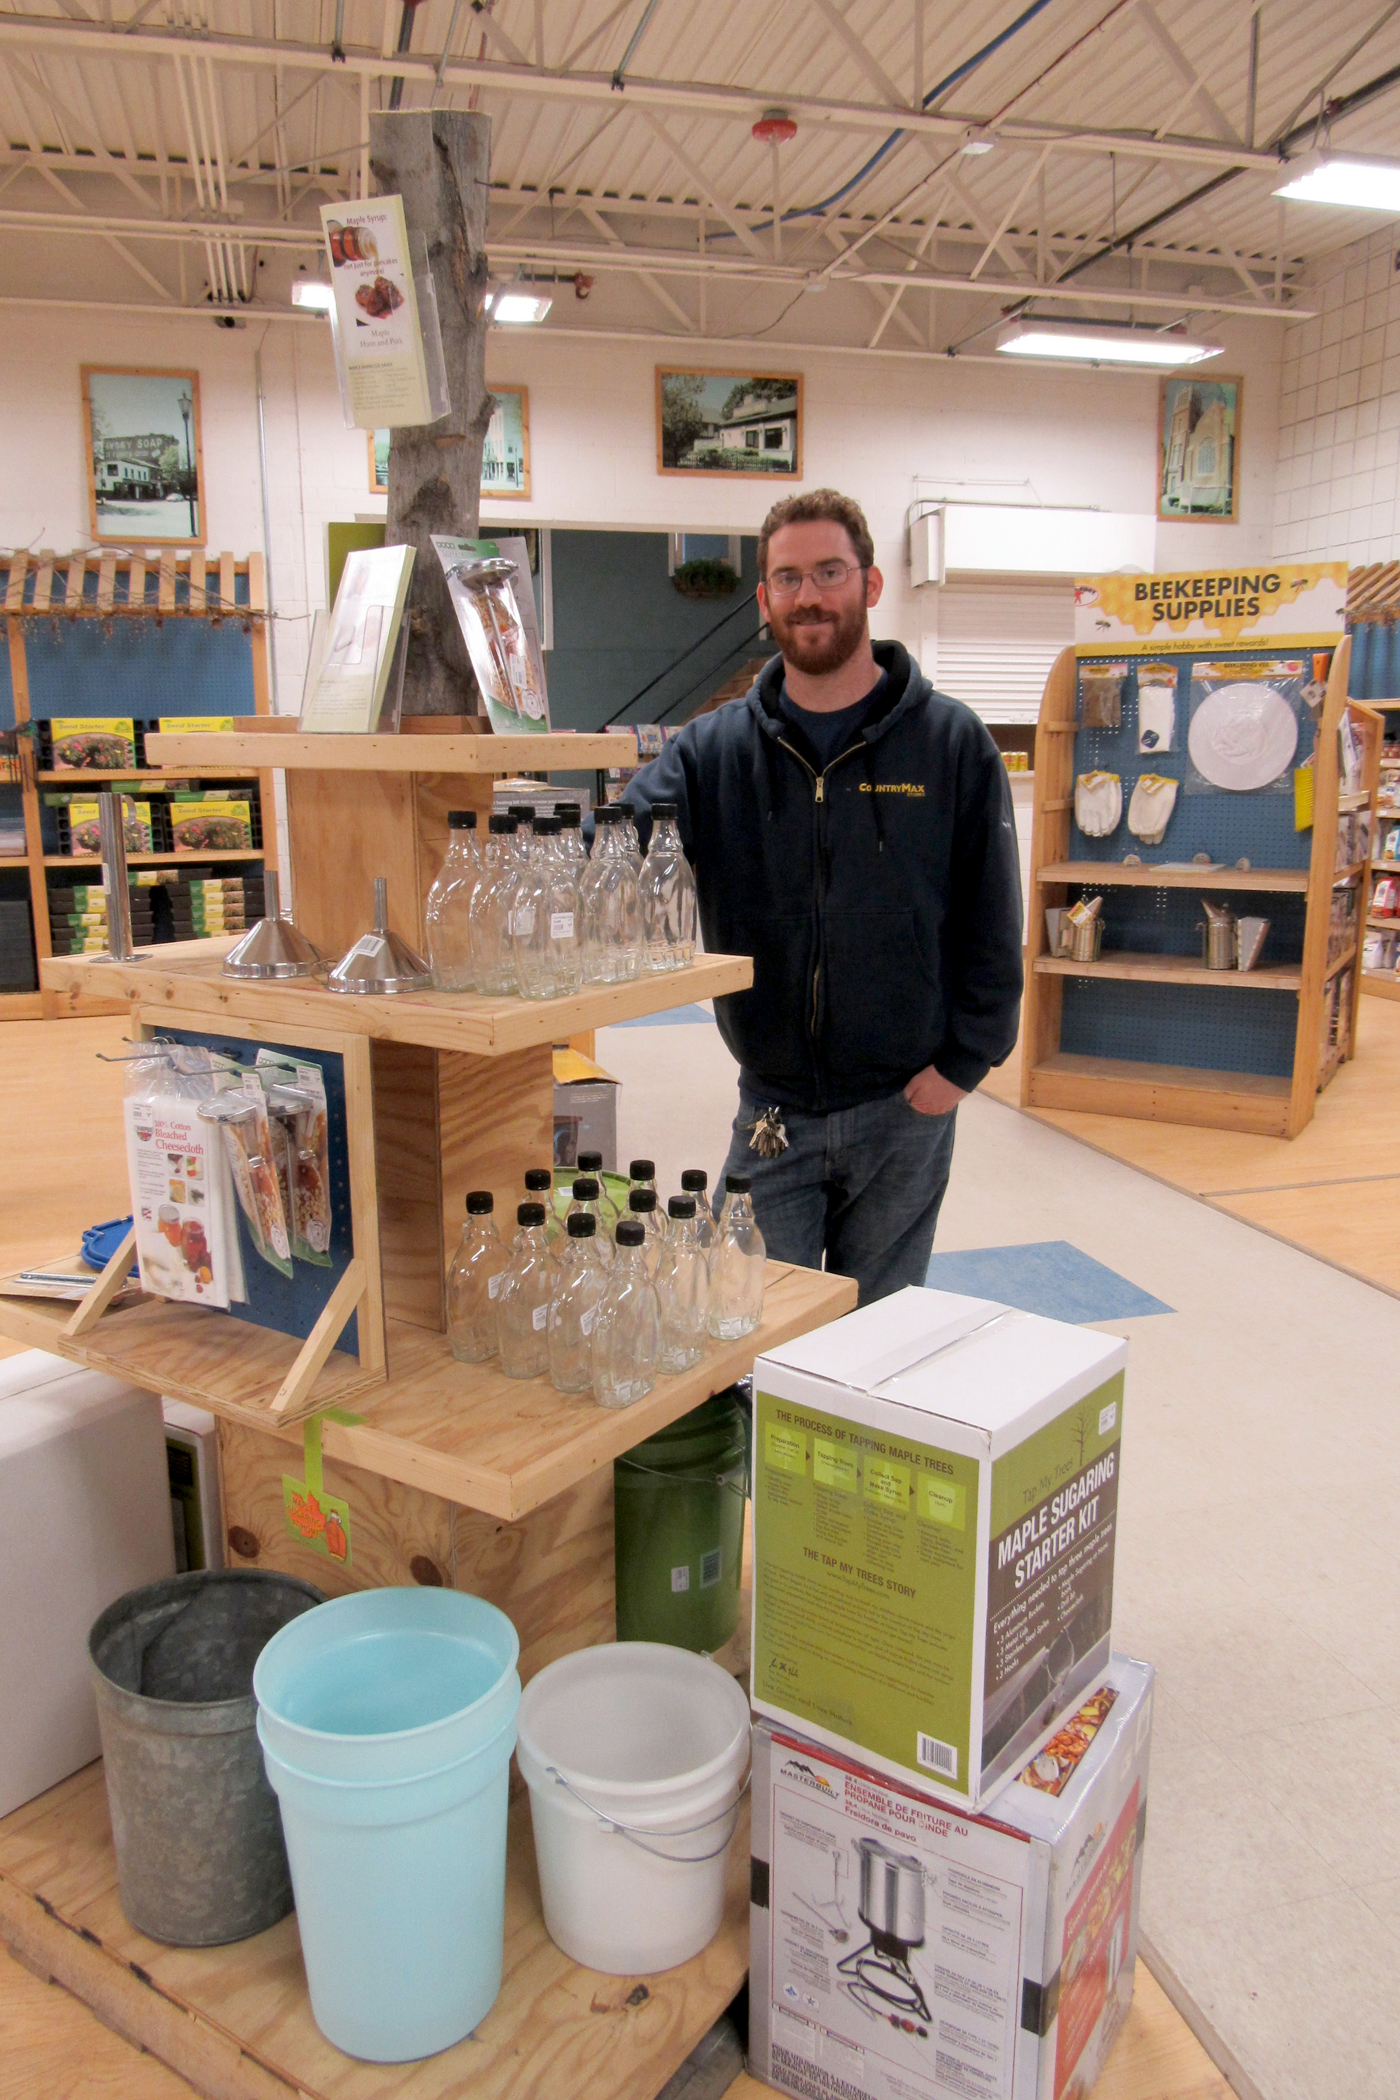 f6f39f3d47f Brockport Country Max store manager Josh Forbes stands next to equipment  and books available for those